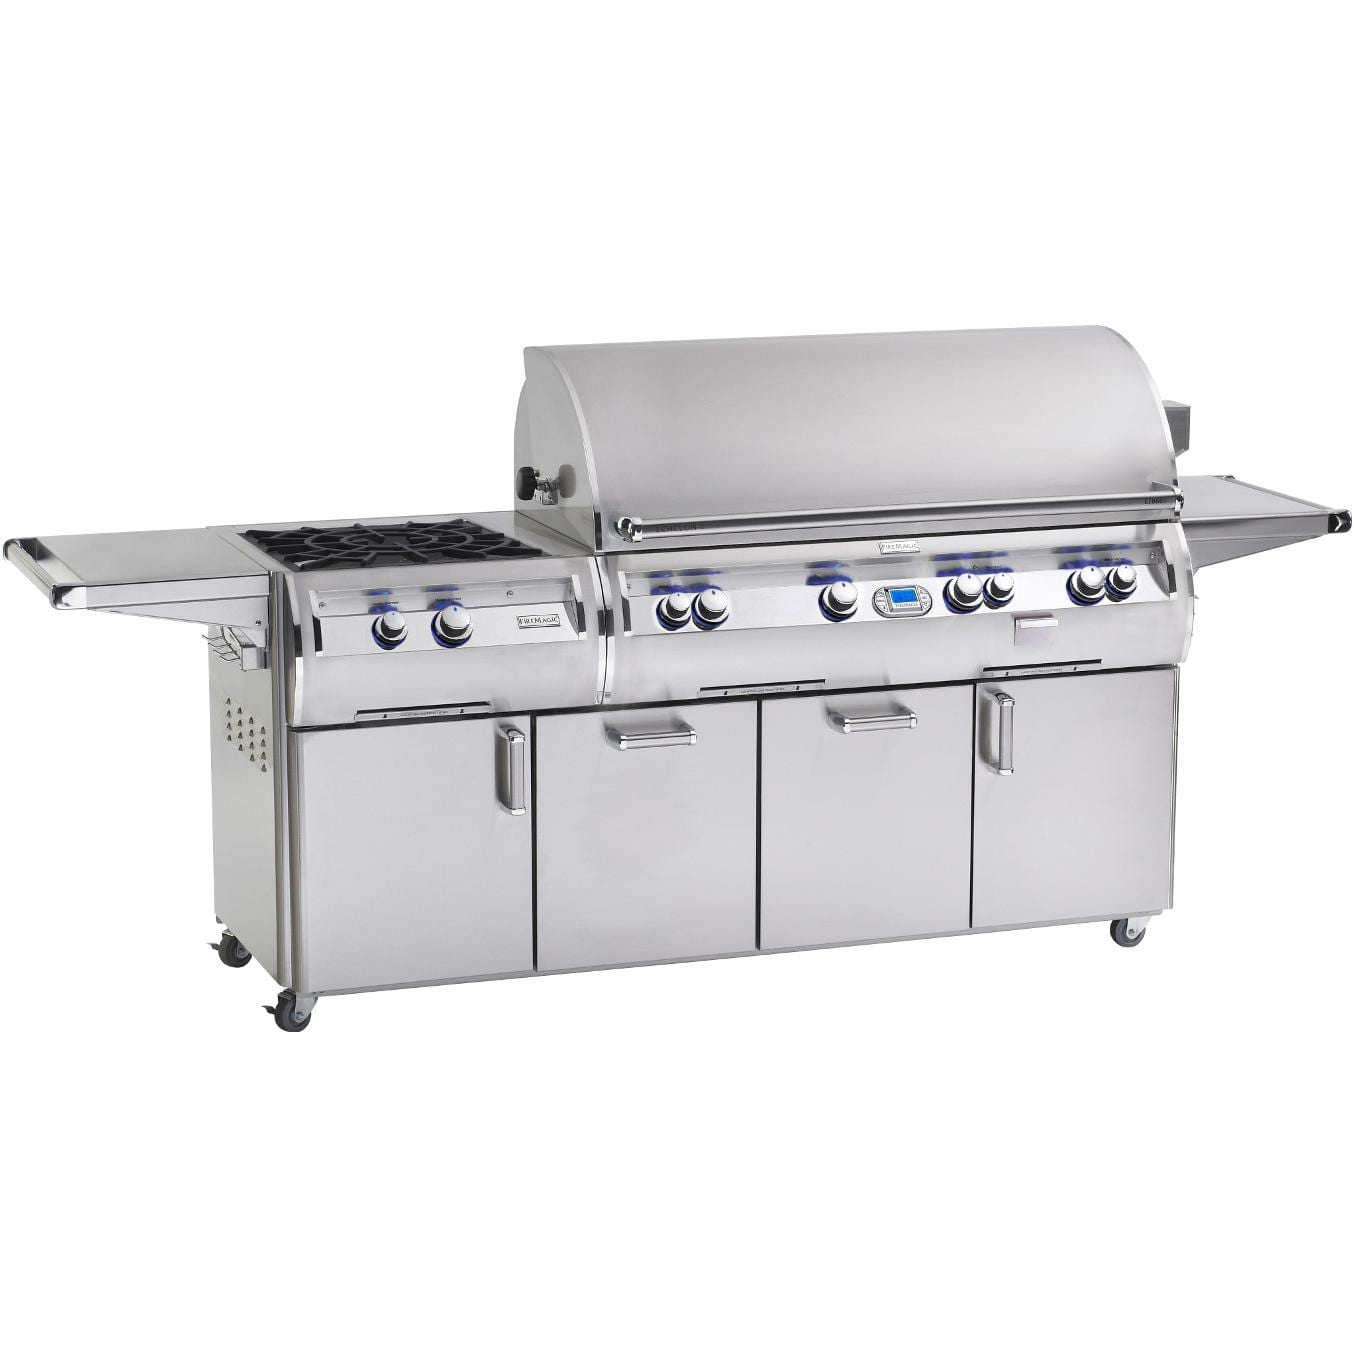 Fire Magic Echelon Diamond E1060s Propane Gas Grill With Power Burner On Cart